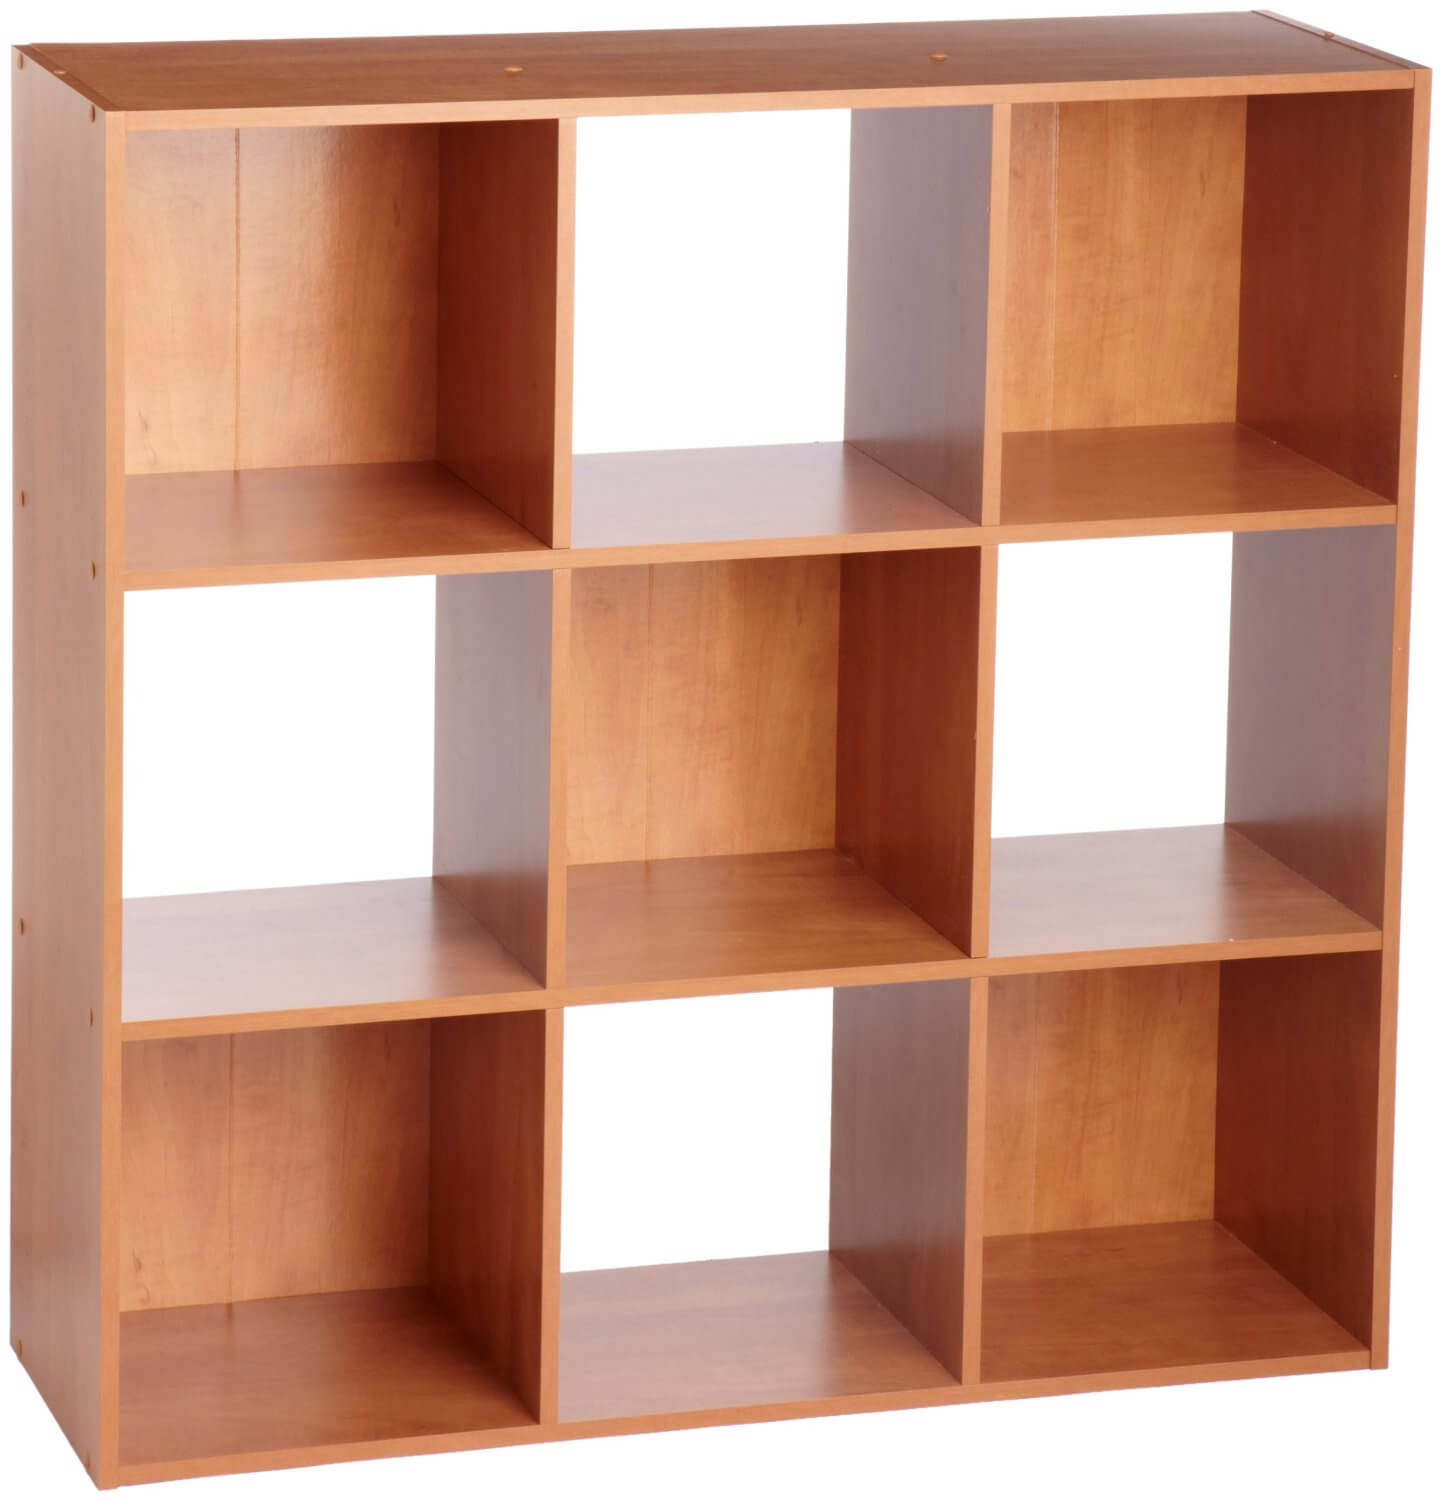 I Love The Color On This Checkered 9 Cube Bookshelf. The Checkered Pattern  Is Achieved